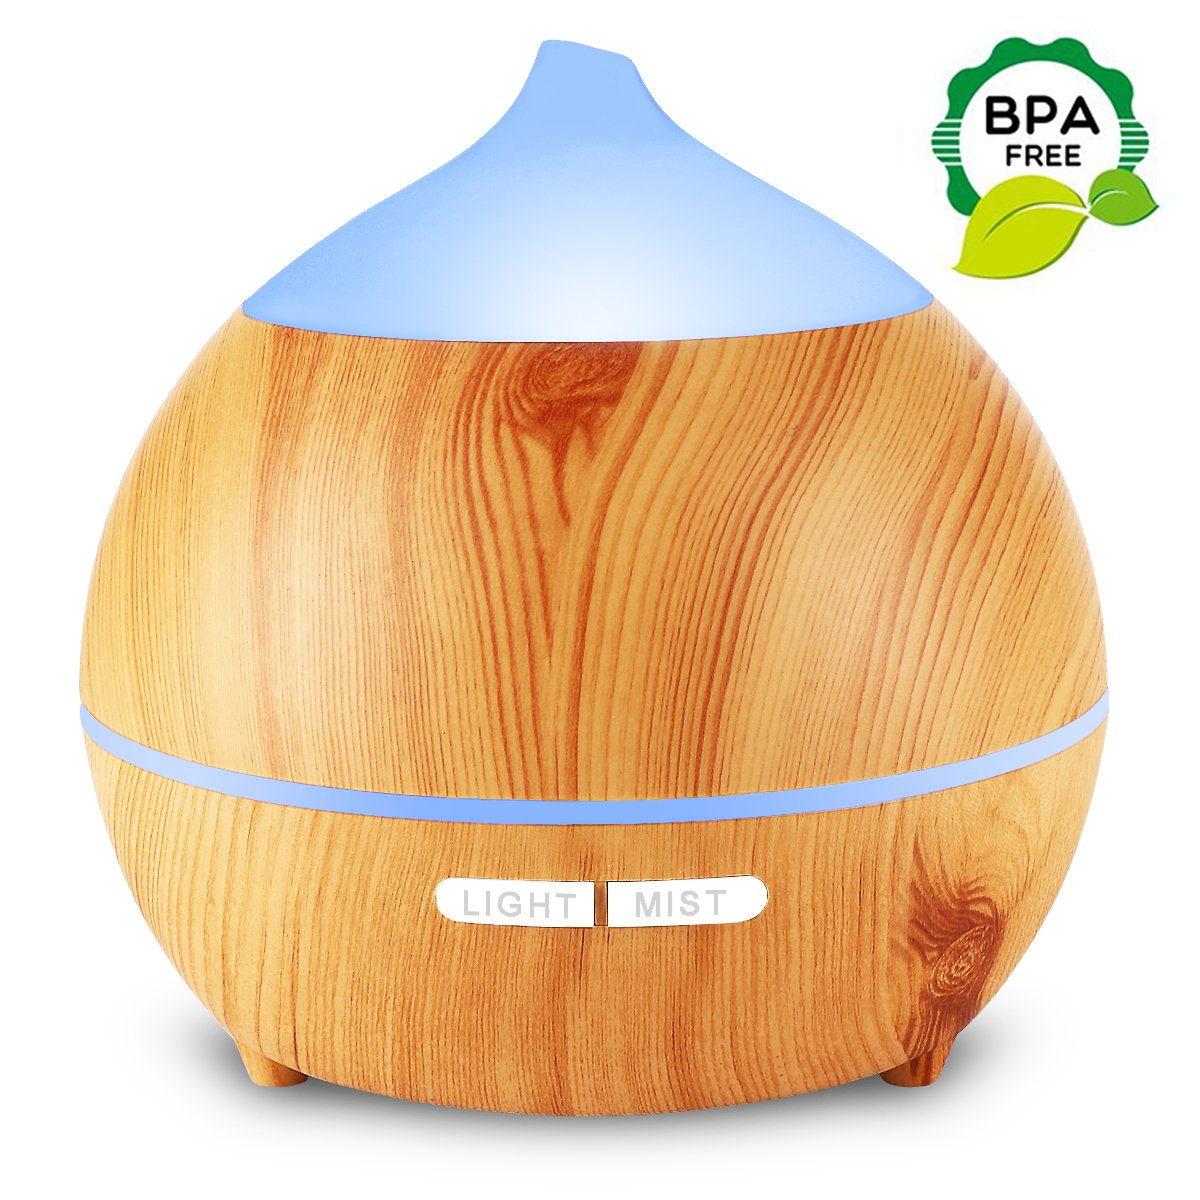 Aromatherapy Essential Oil Diffuser, Mulcolor 250ml Ultrasonic Diffuser for Essential Oils, Cool Mist Aroma Diffuser Humidifier, Waterless Auto Shut-off, 7 Colored LED Lights, Adjustable MIST Mode